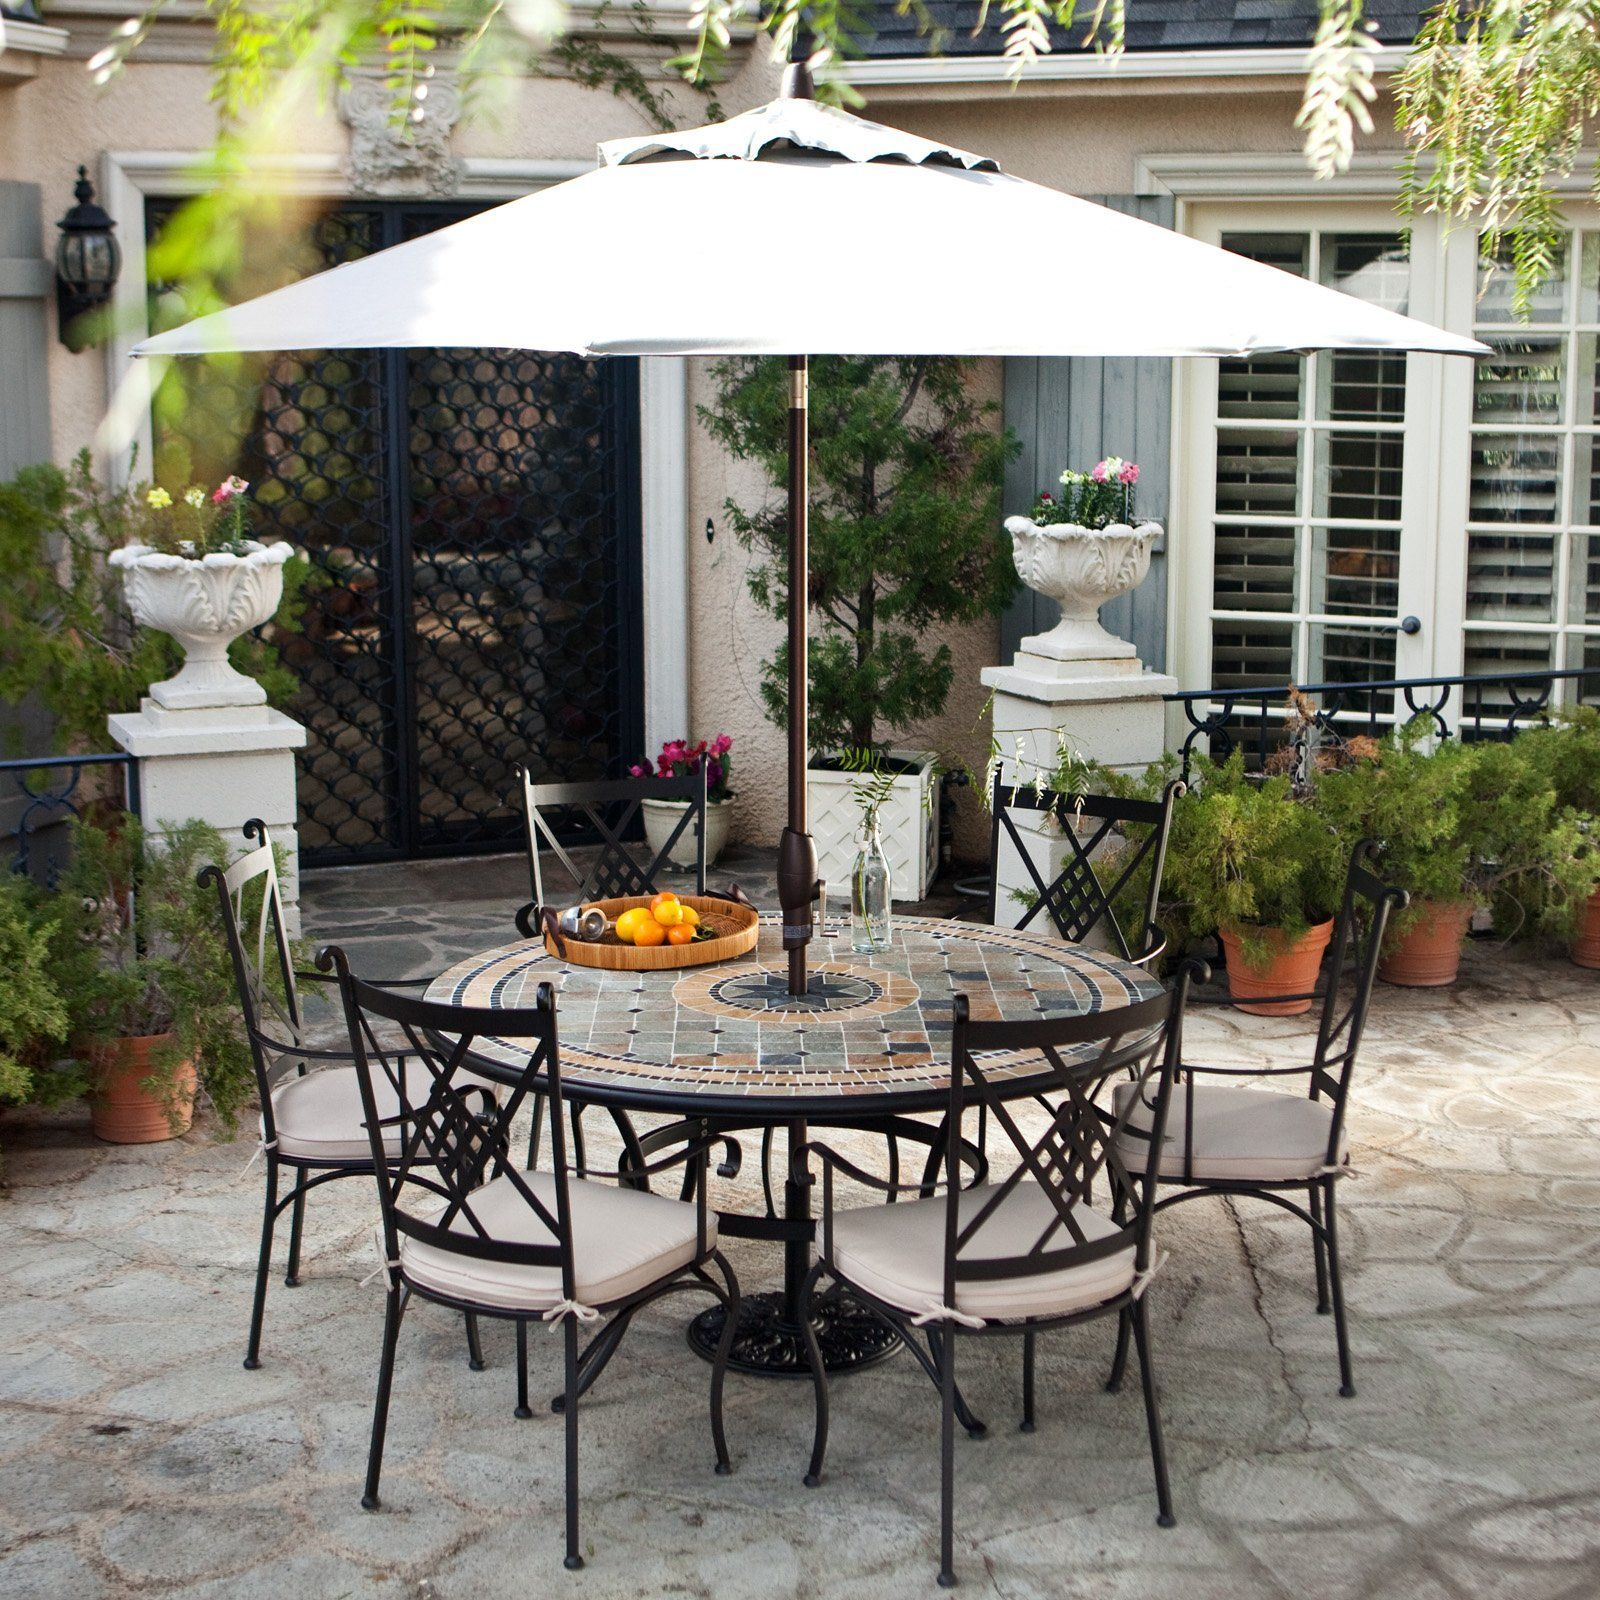 Round Patio Dining Sets For 6 Round Patio Table Patio Set With